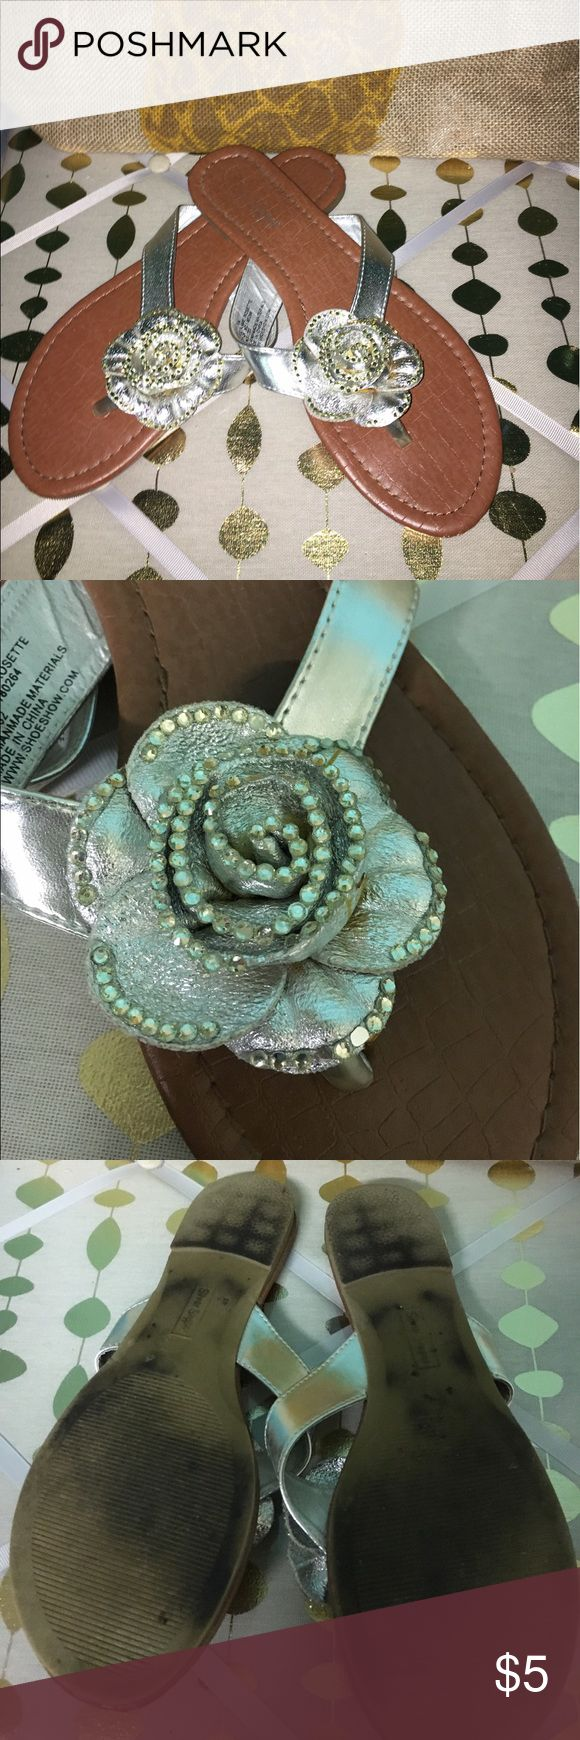 Flip Flop Silver with Sequin flower, glue spot visible on side of flower, not noticeable when wearing Silver Slipper Shoes Sandals